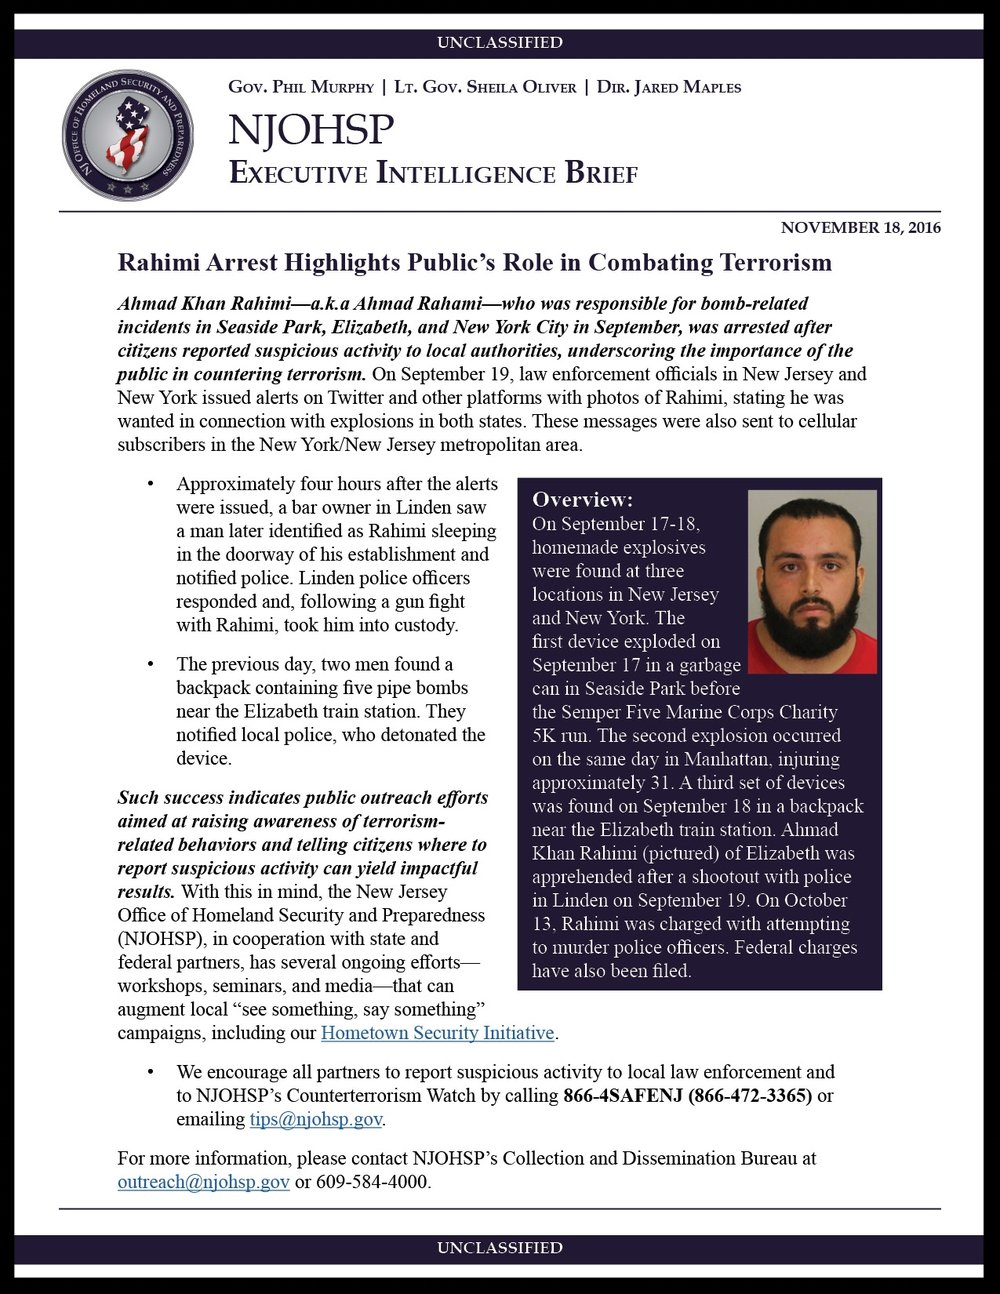 Rahimi Arrest Highlights Public's Role in Combating Terrorism 1.19.18.jpg